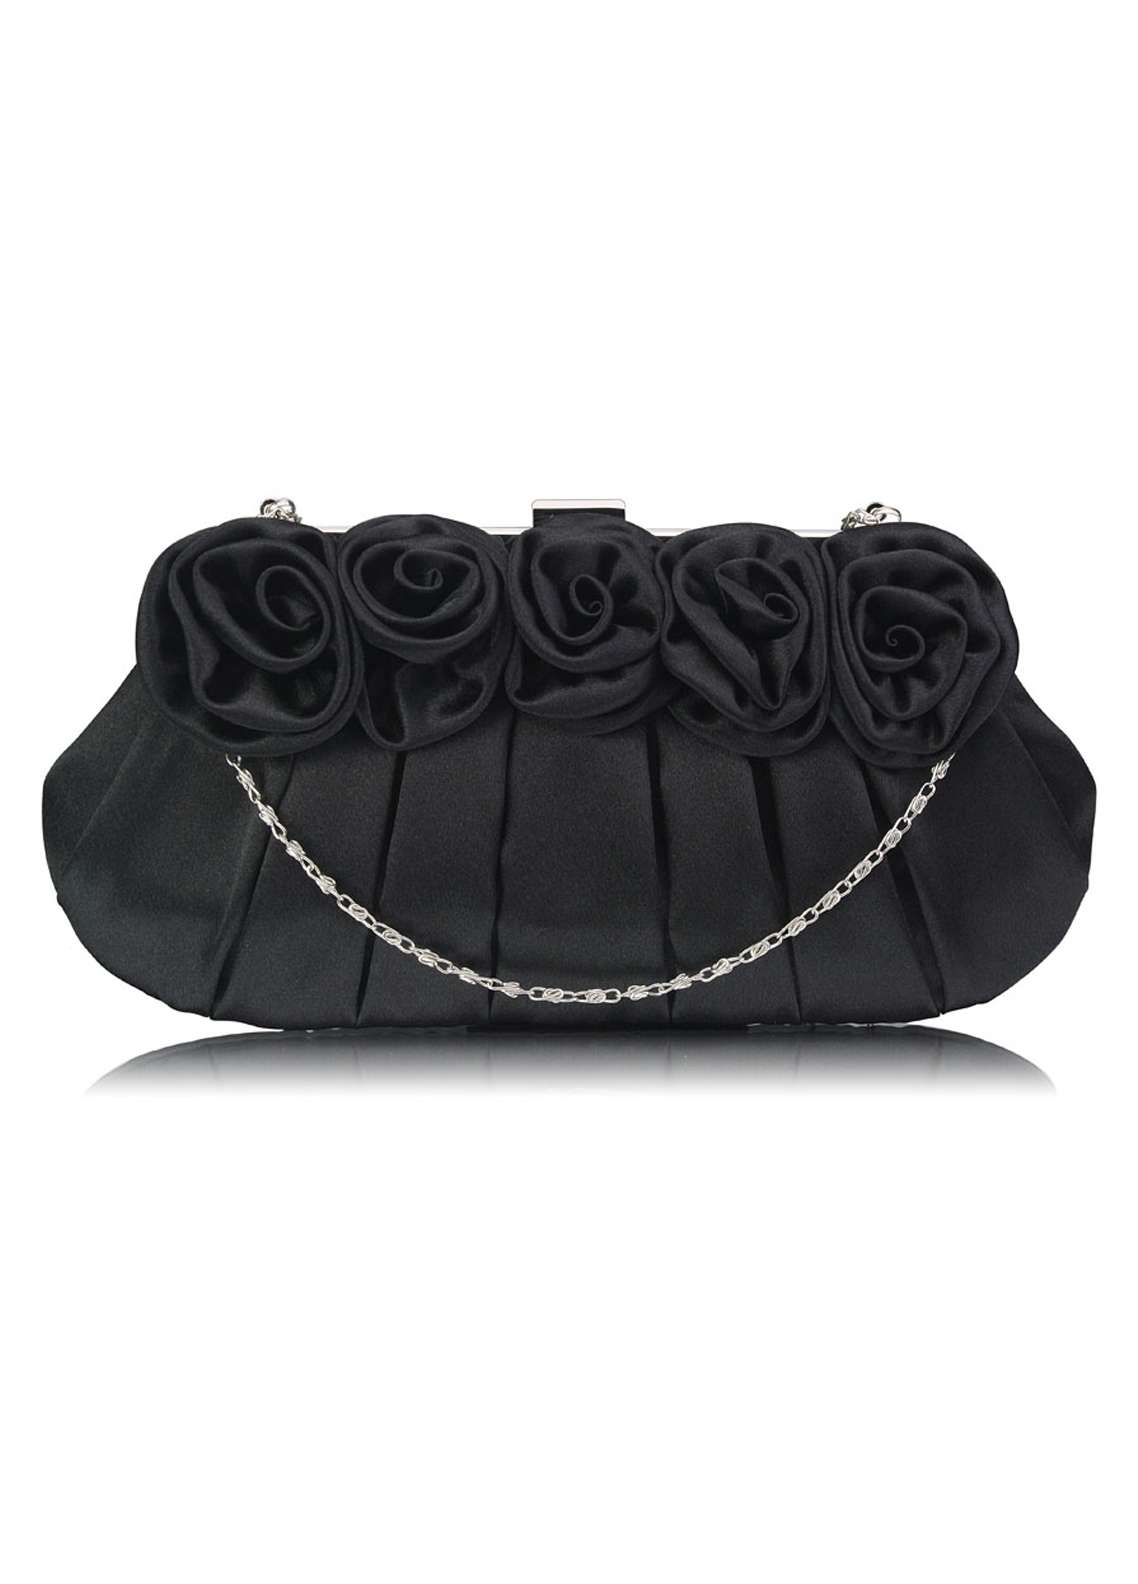 Leesun London   Clutch Bags  for Women  Black with Flower Design